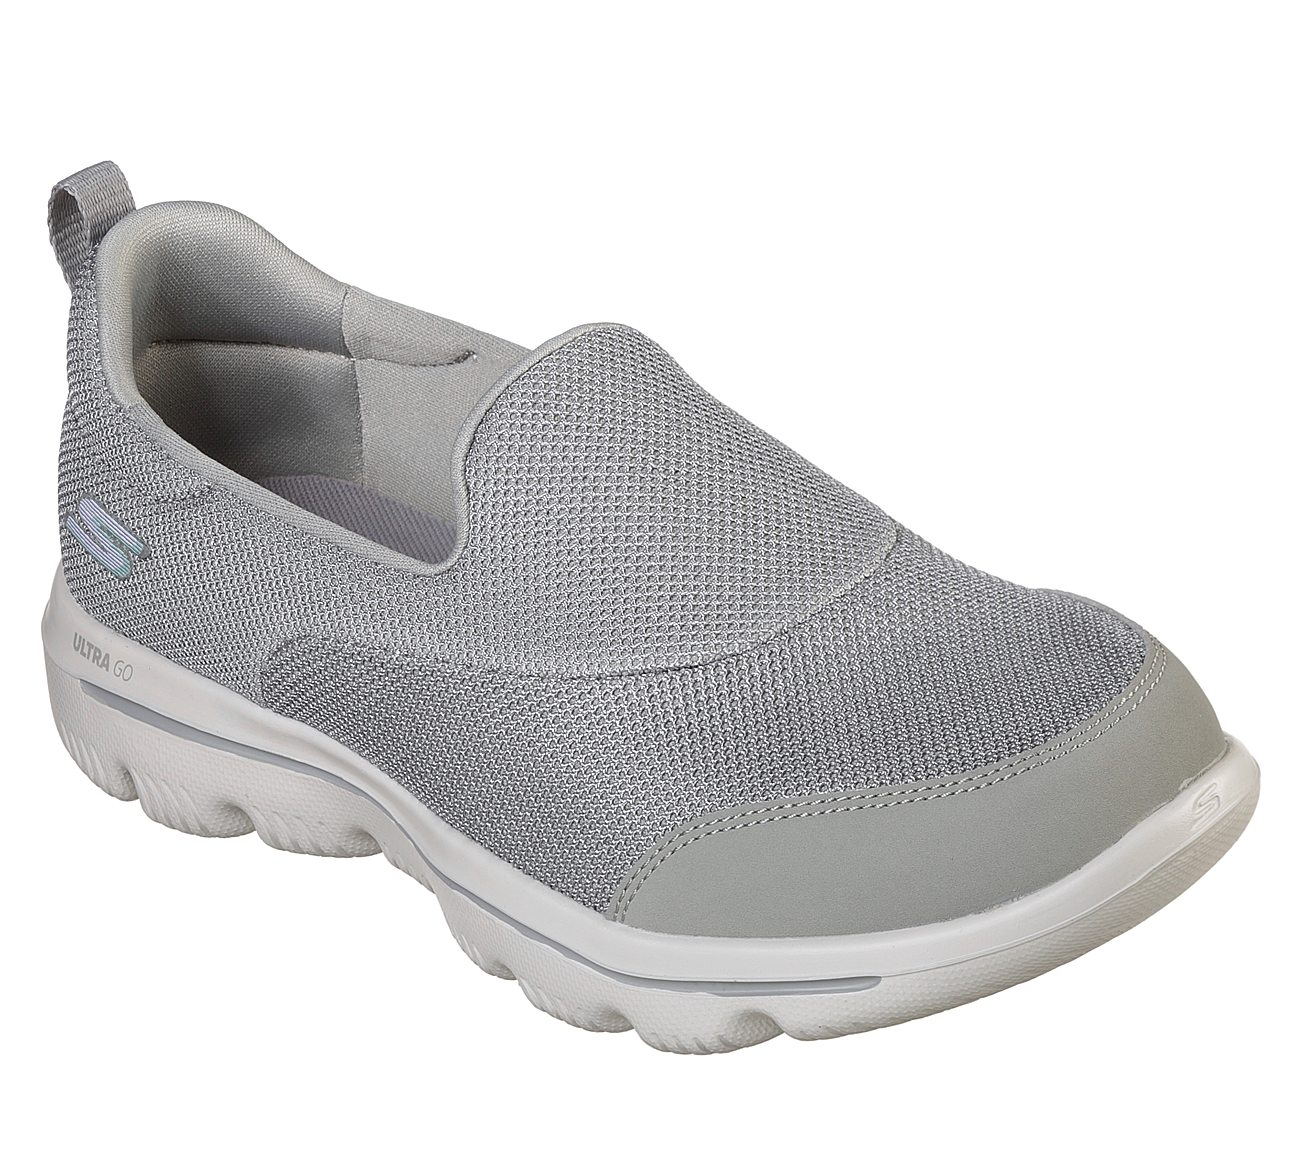 4e1d38c9a4b7 Buy SKECHERS Skechers GOwalk Evolution Ultra - Reach Skechers ...